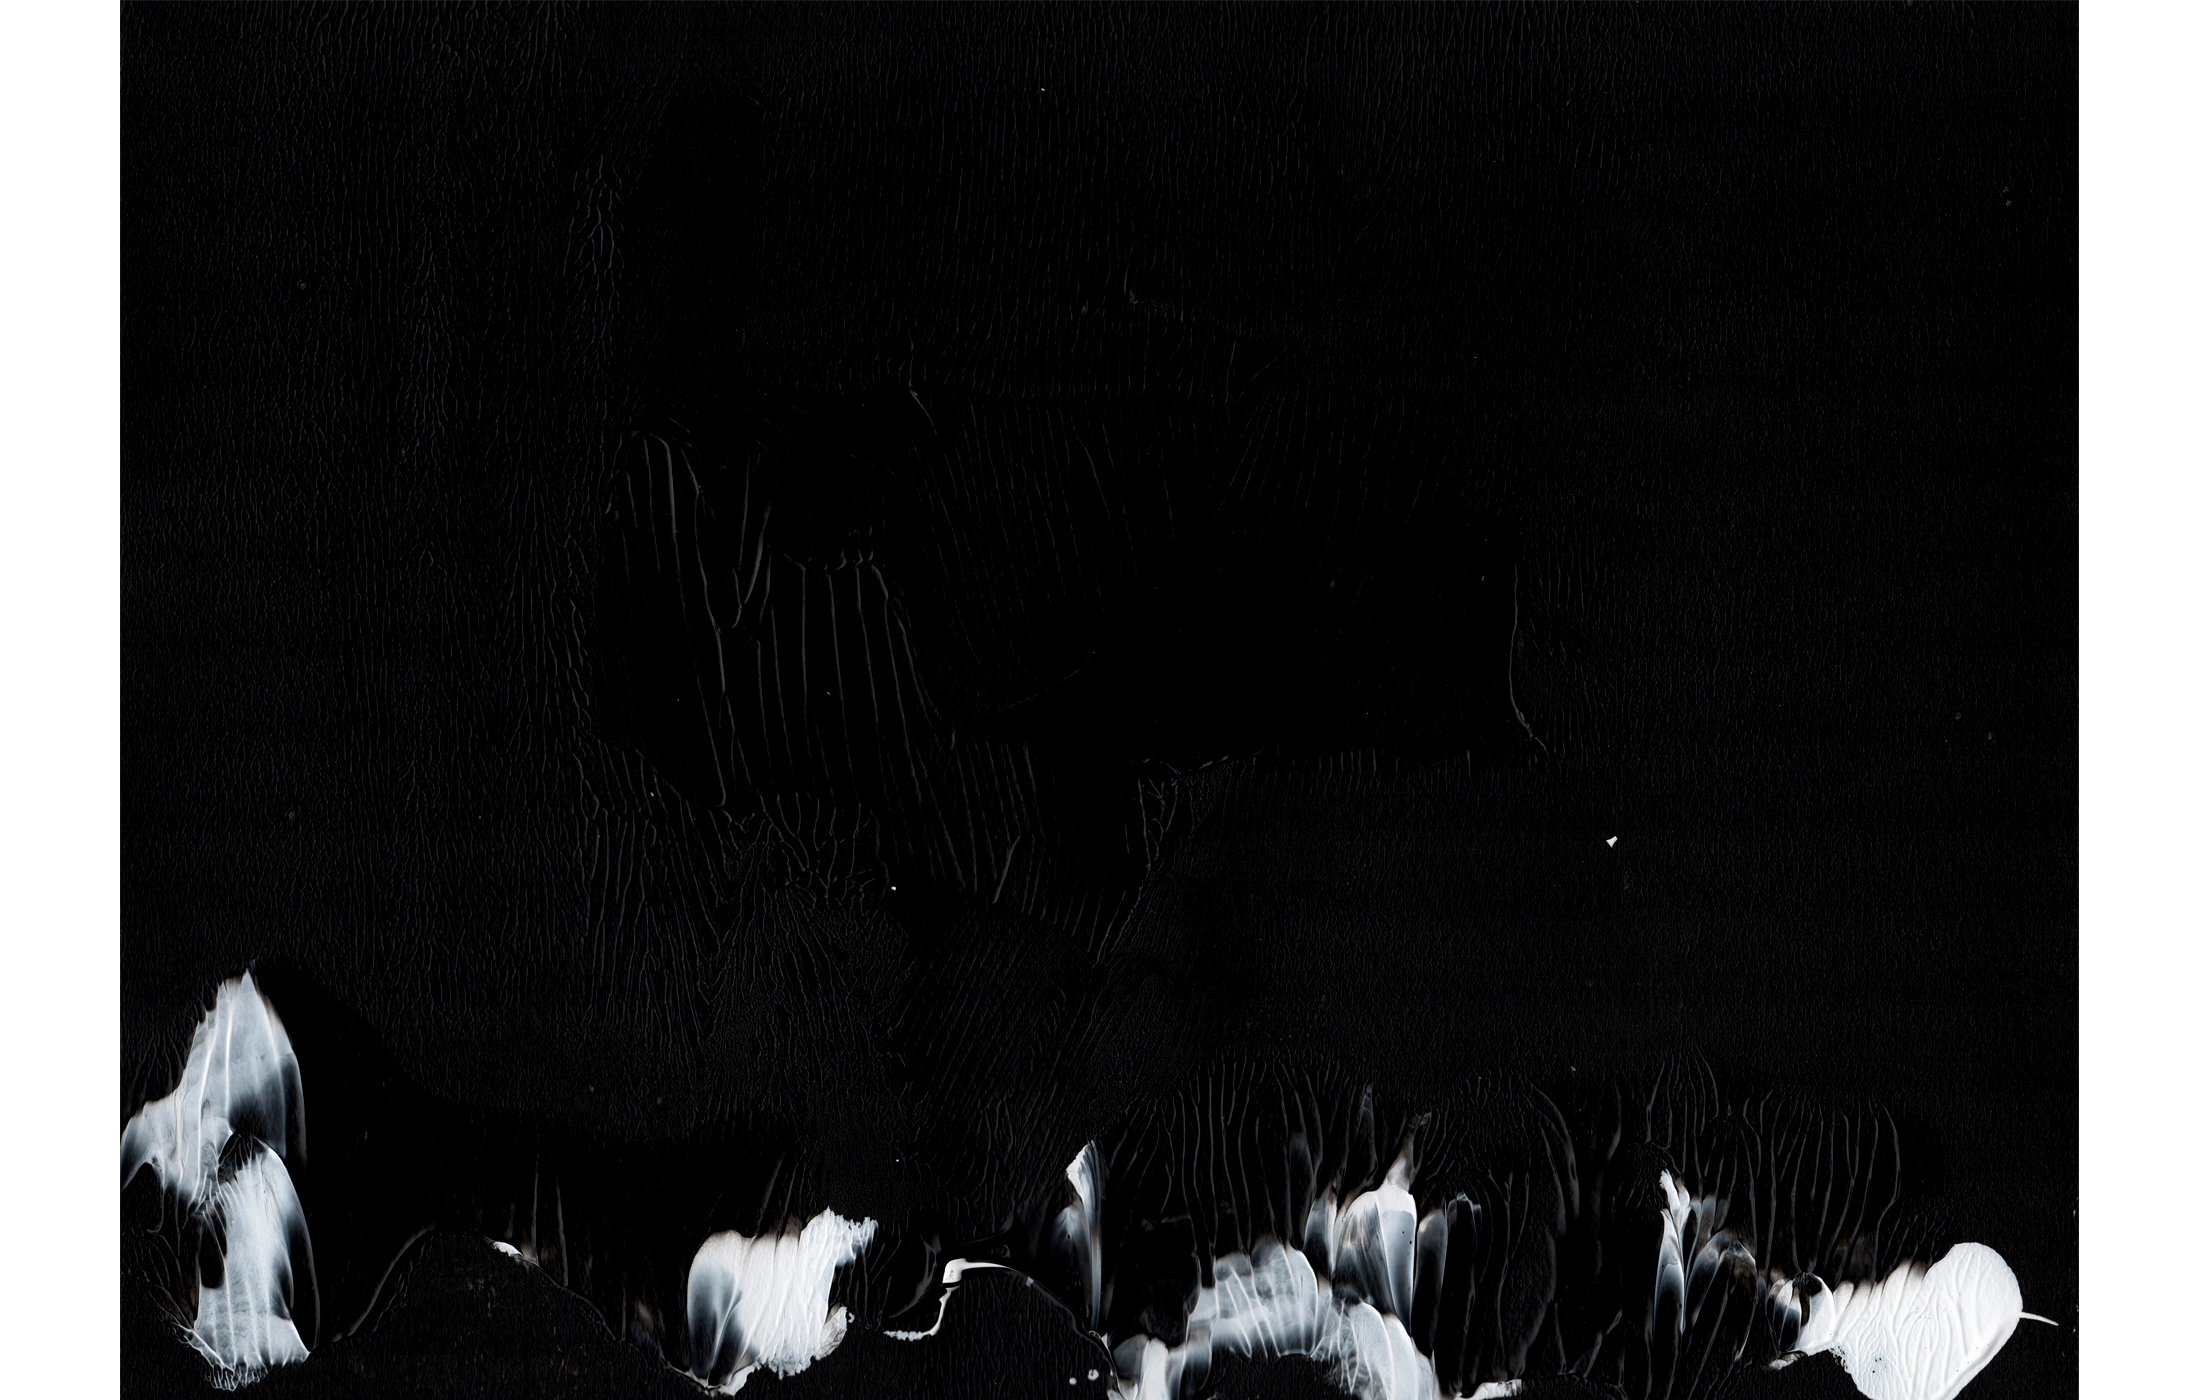 Agathe Toman Unfold #3 Painting Abstract Art Woman Artist French Biarritz Gallery Exhibition Paris Contemporary Modern Black White Shades